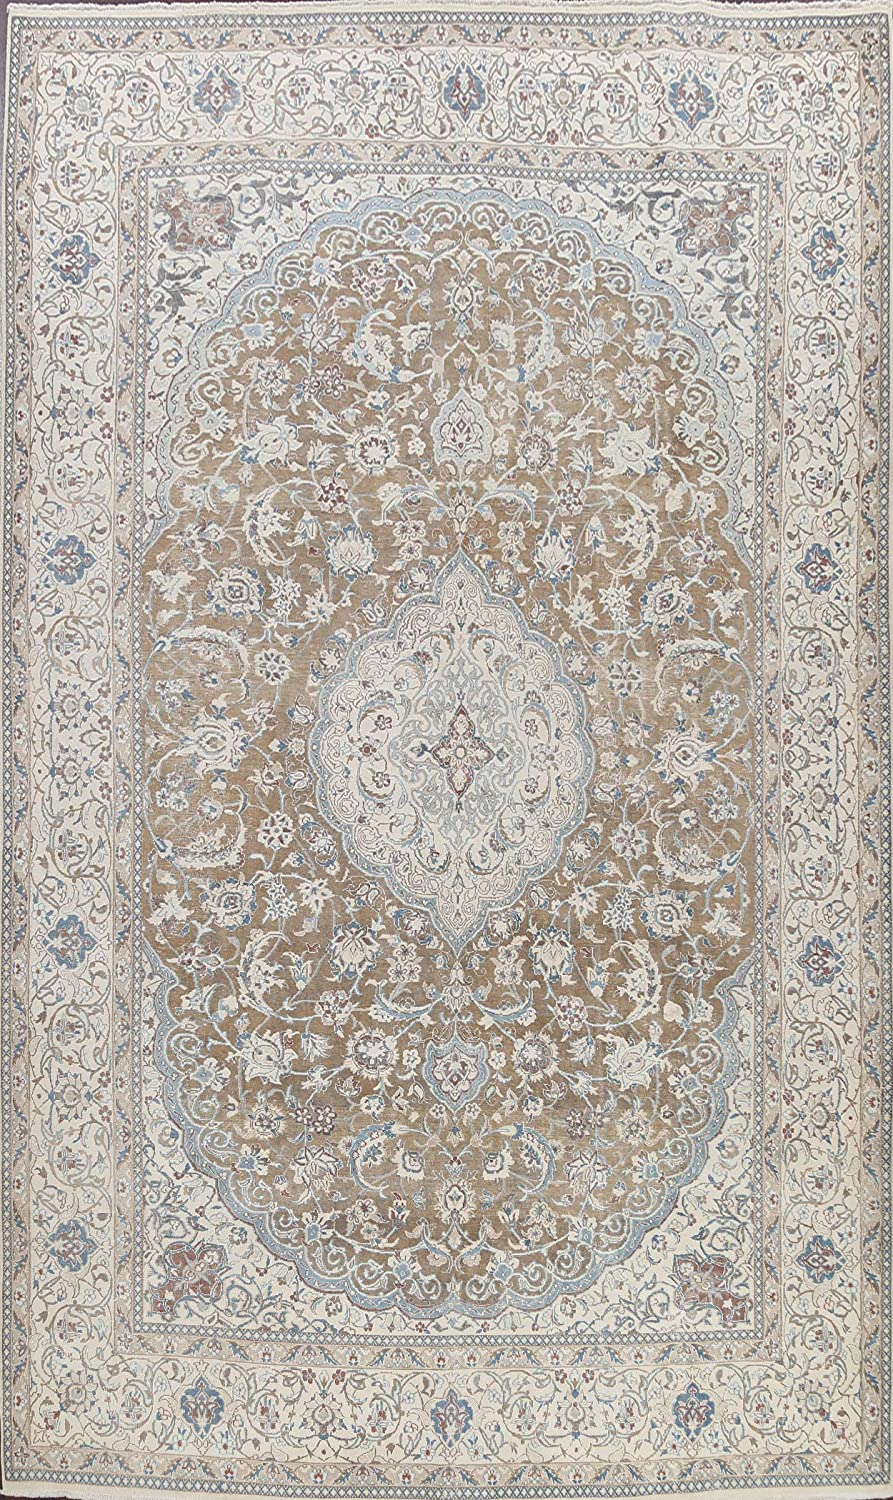 Vintage Brown Floral Muted Nain 40% OFF Cheap Sale We OFFer at cheap prices Oriental Hand-Knotted Rug Area W